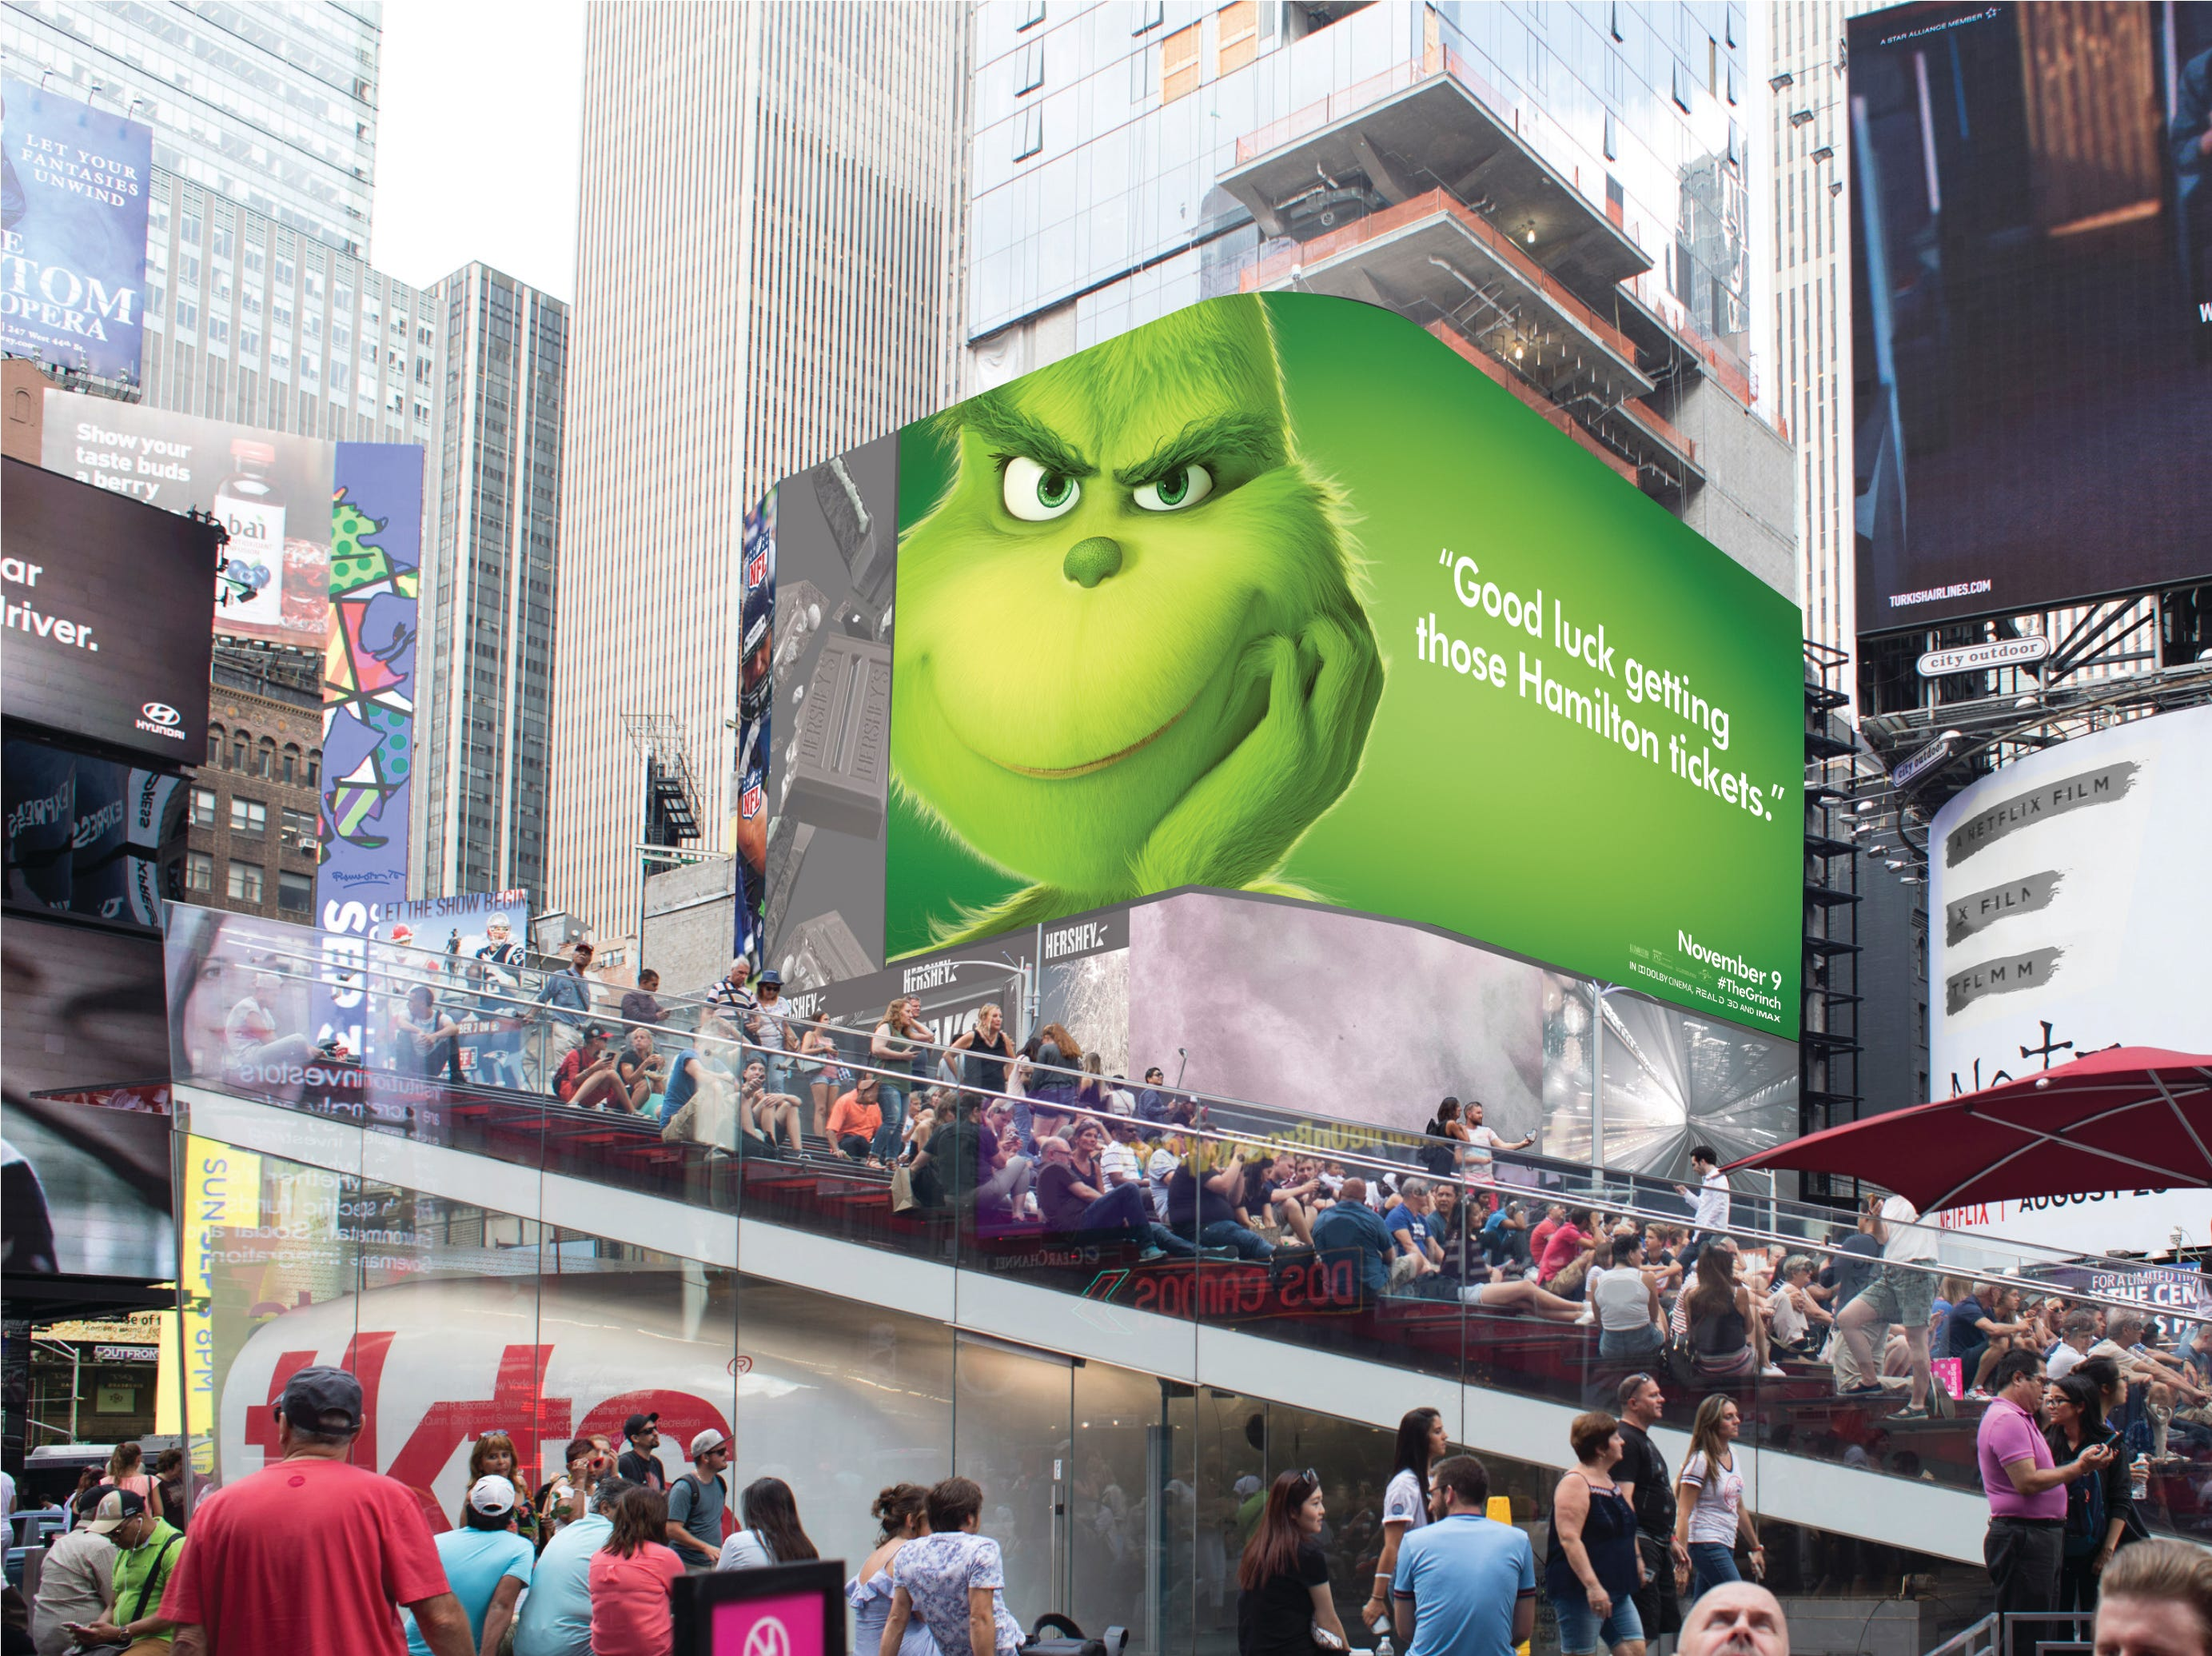 The Grinch laughs at patrons in line in Times Square hoping for tickets to the hottest show on Broadway.